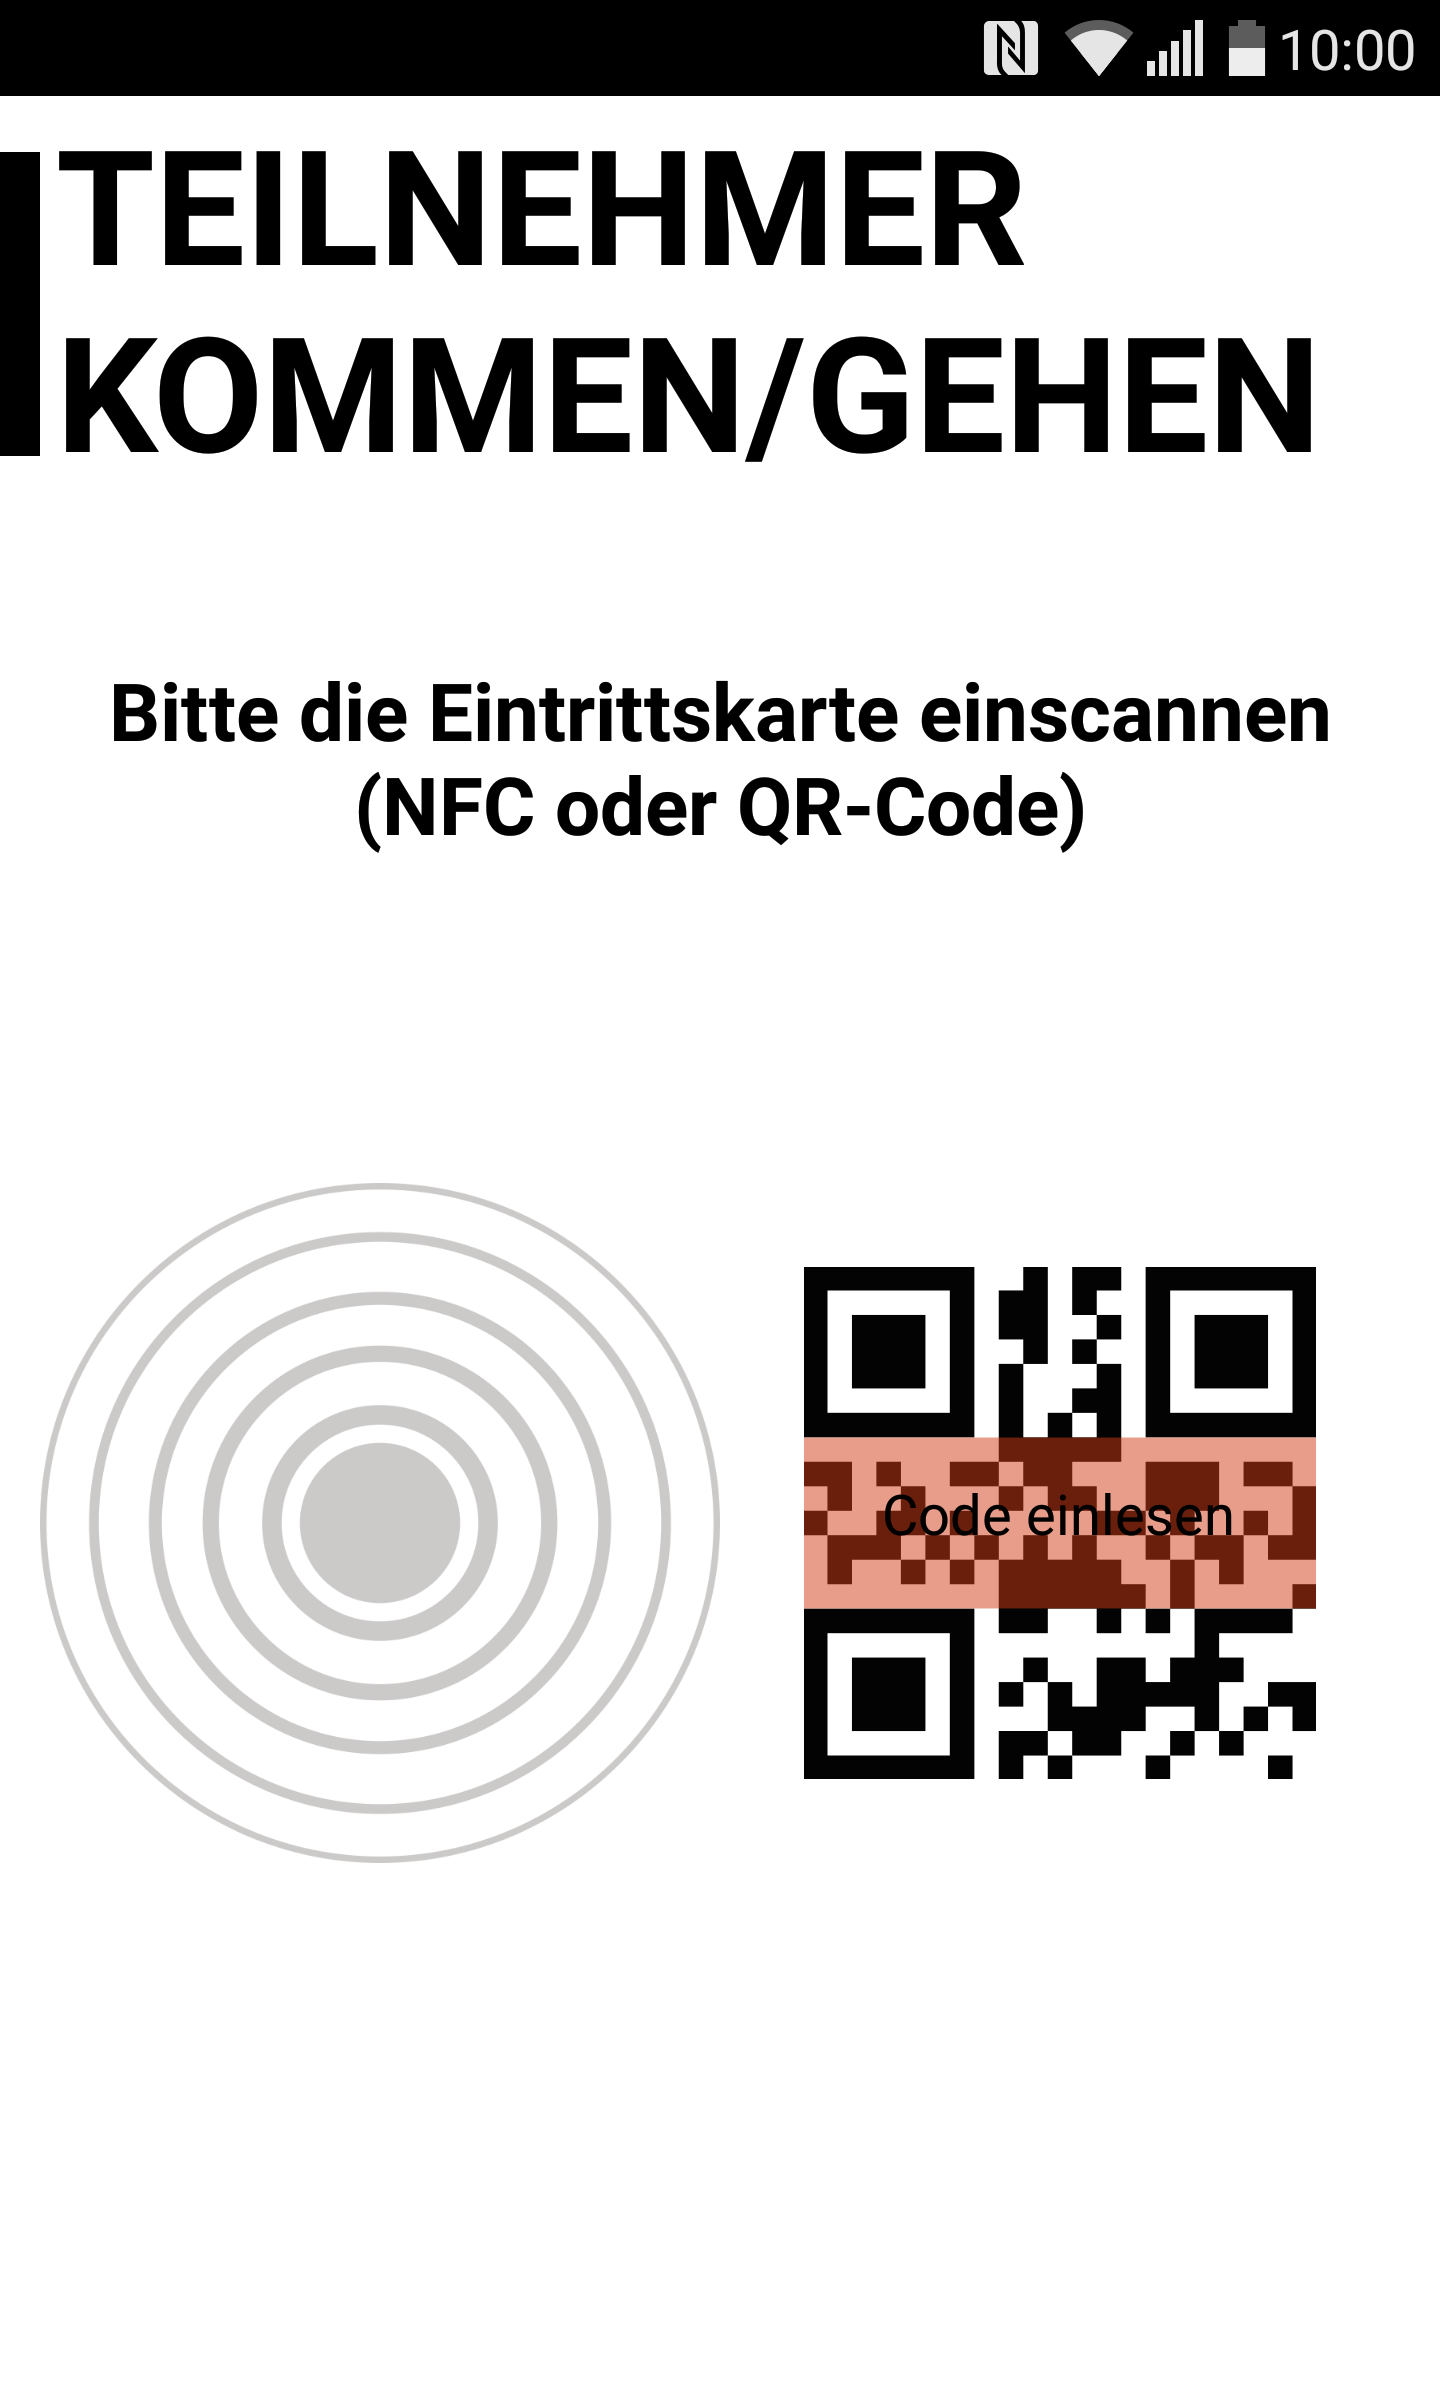 ginstr_app_eventManager_DE-7